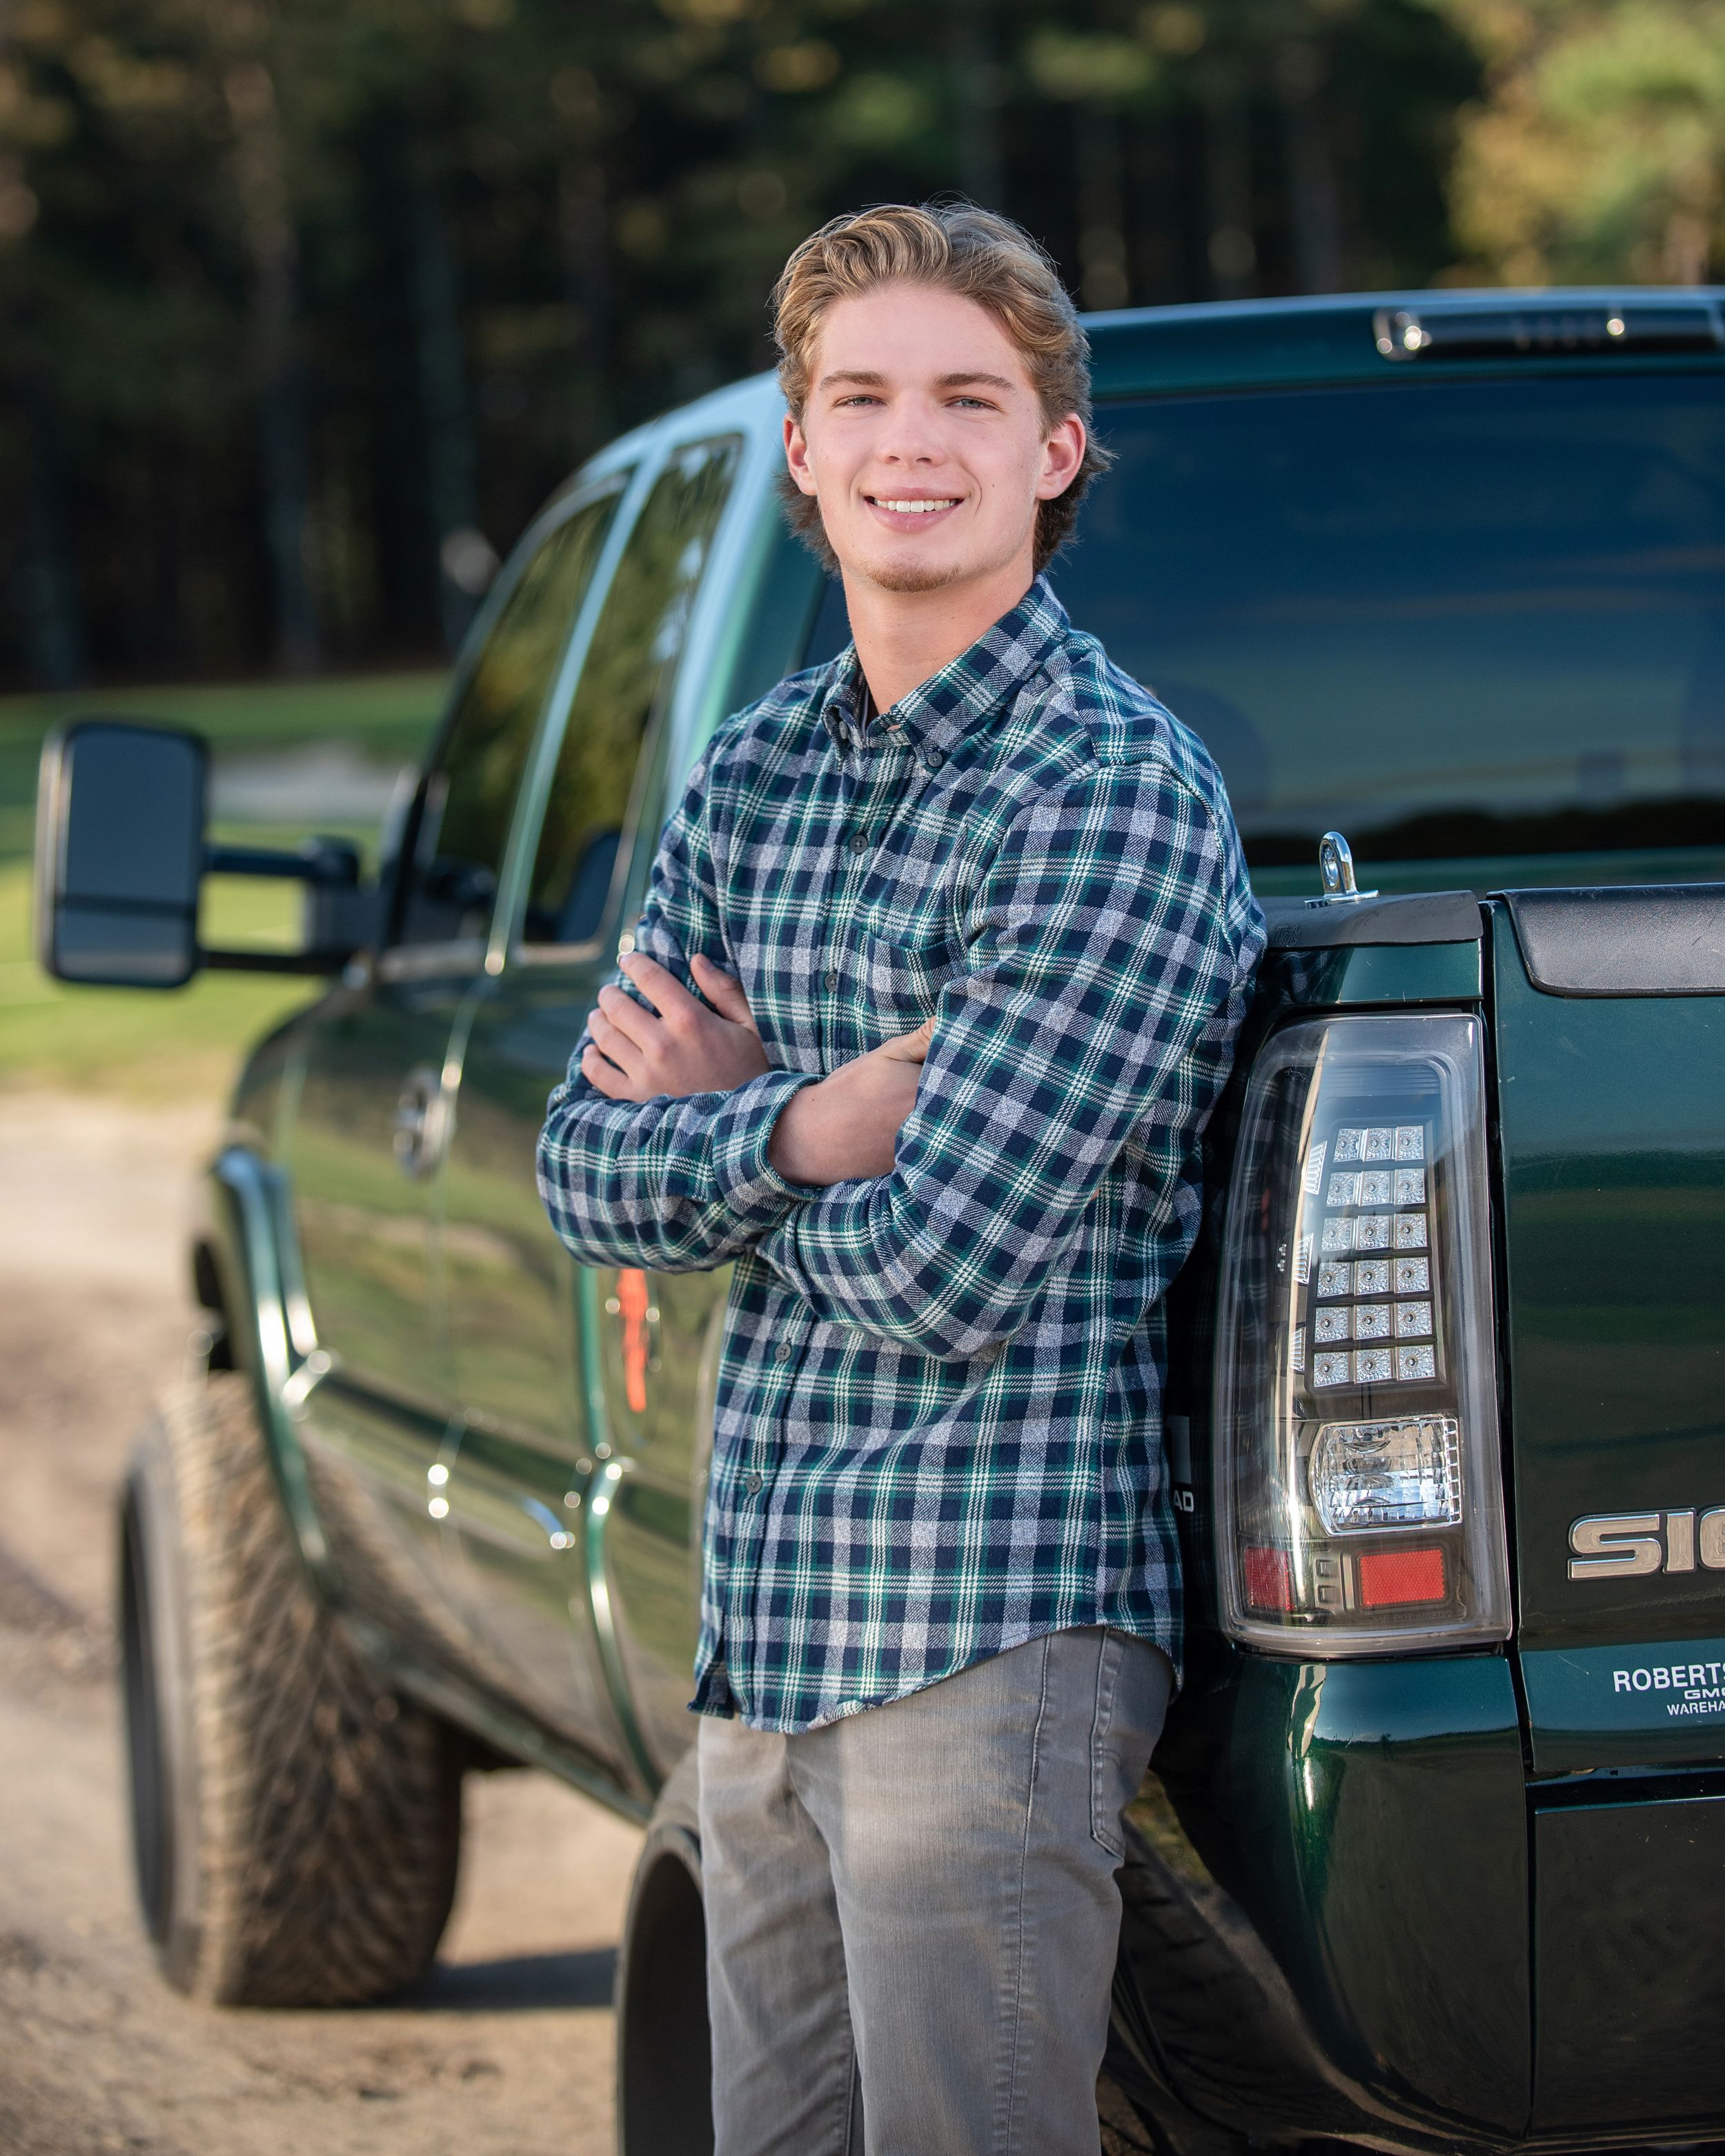 Plymouth North senior portrait of a boy with his truck by heidi harting photography